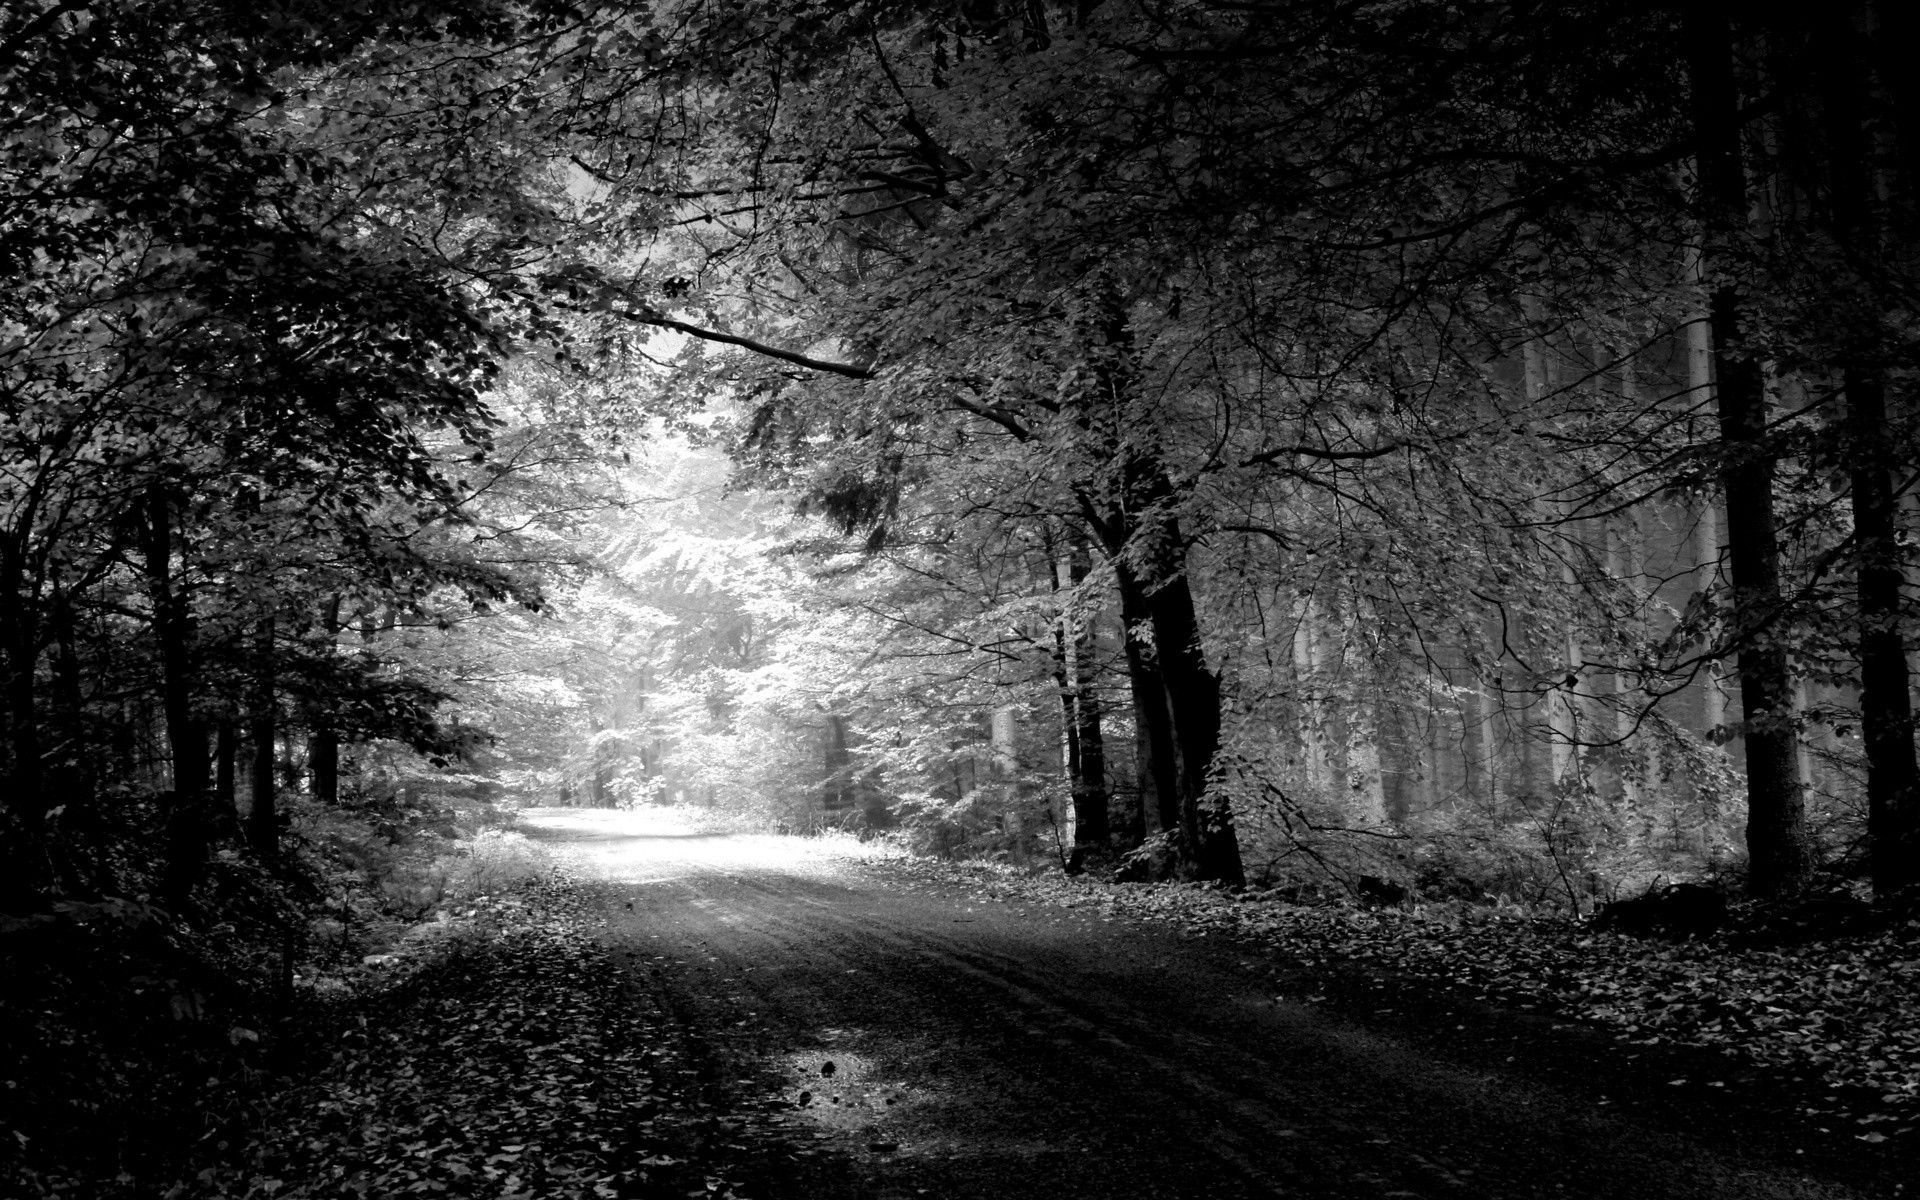 Hd wallpaper black and white - Black In White Nature Hd Wallpapers For Your Desktop Free Download